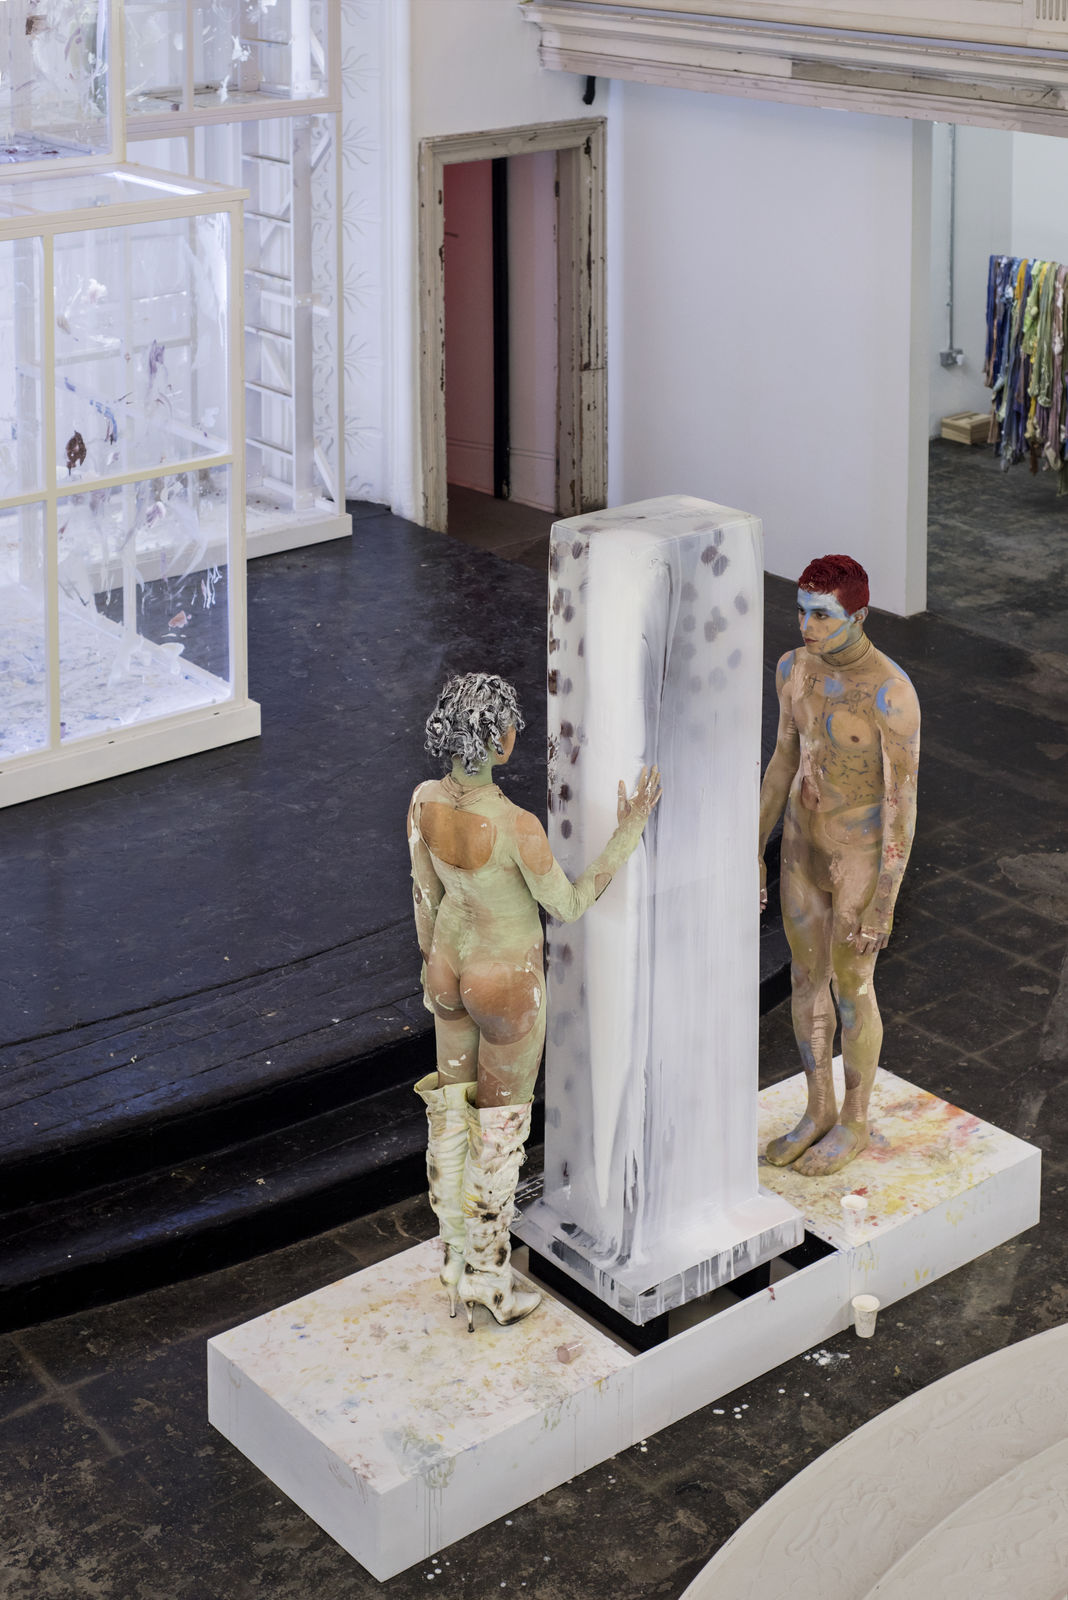 Donna Huanca - Scar Cymbals - performance 07.10.16 - Image Thierry Bal13